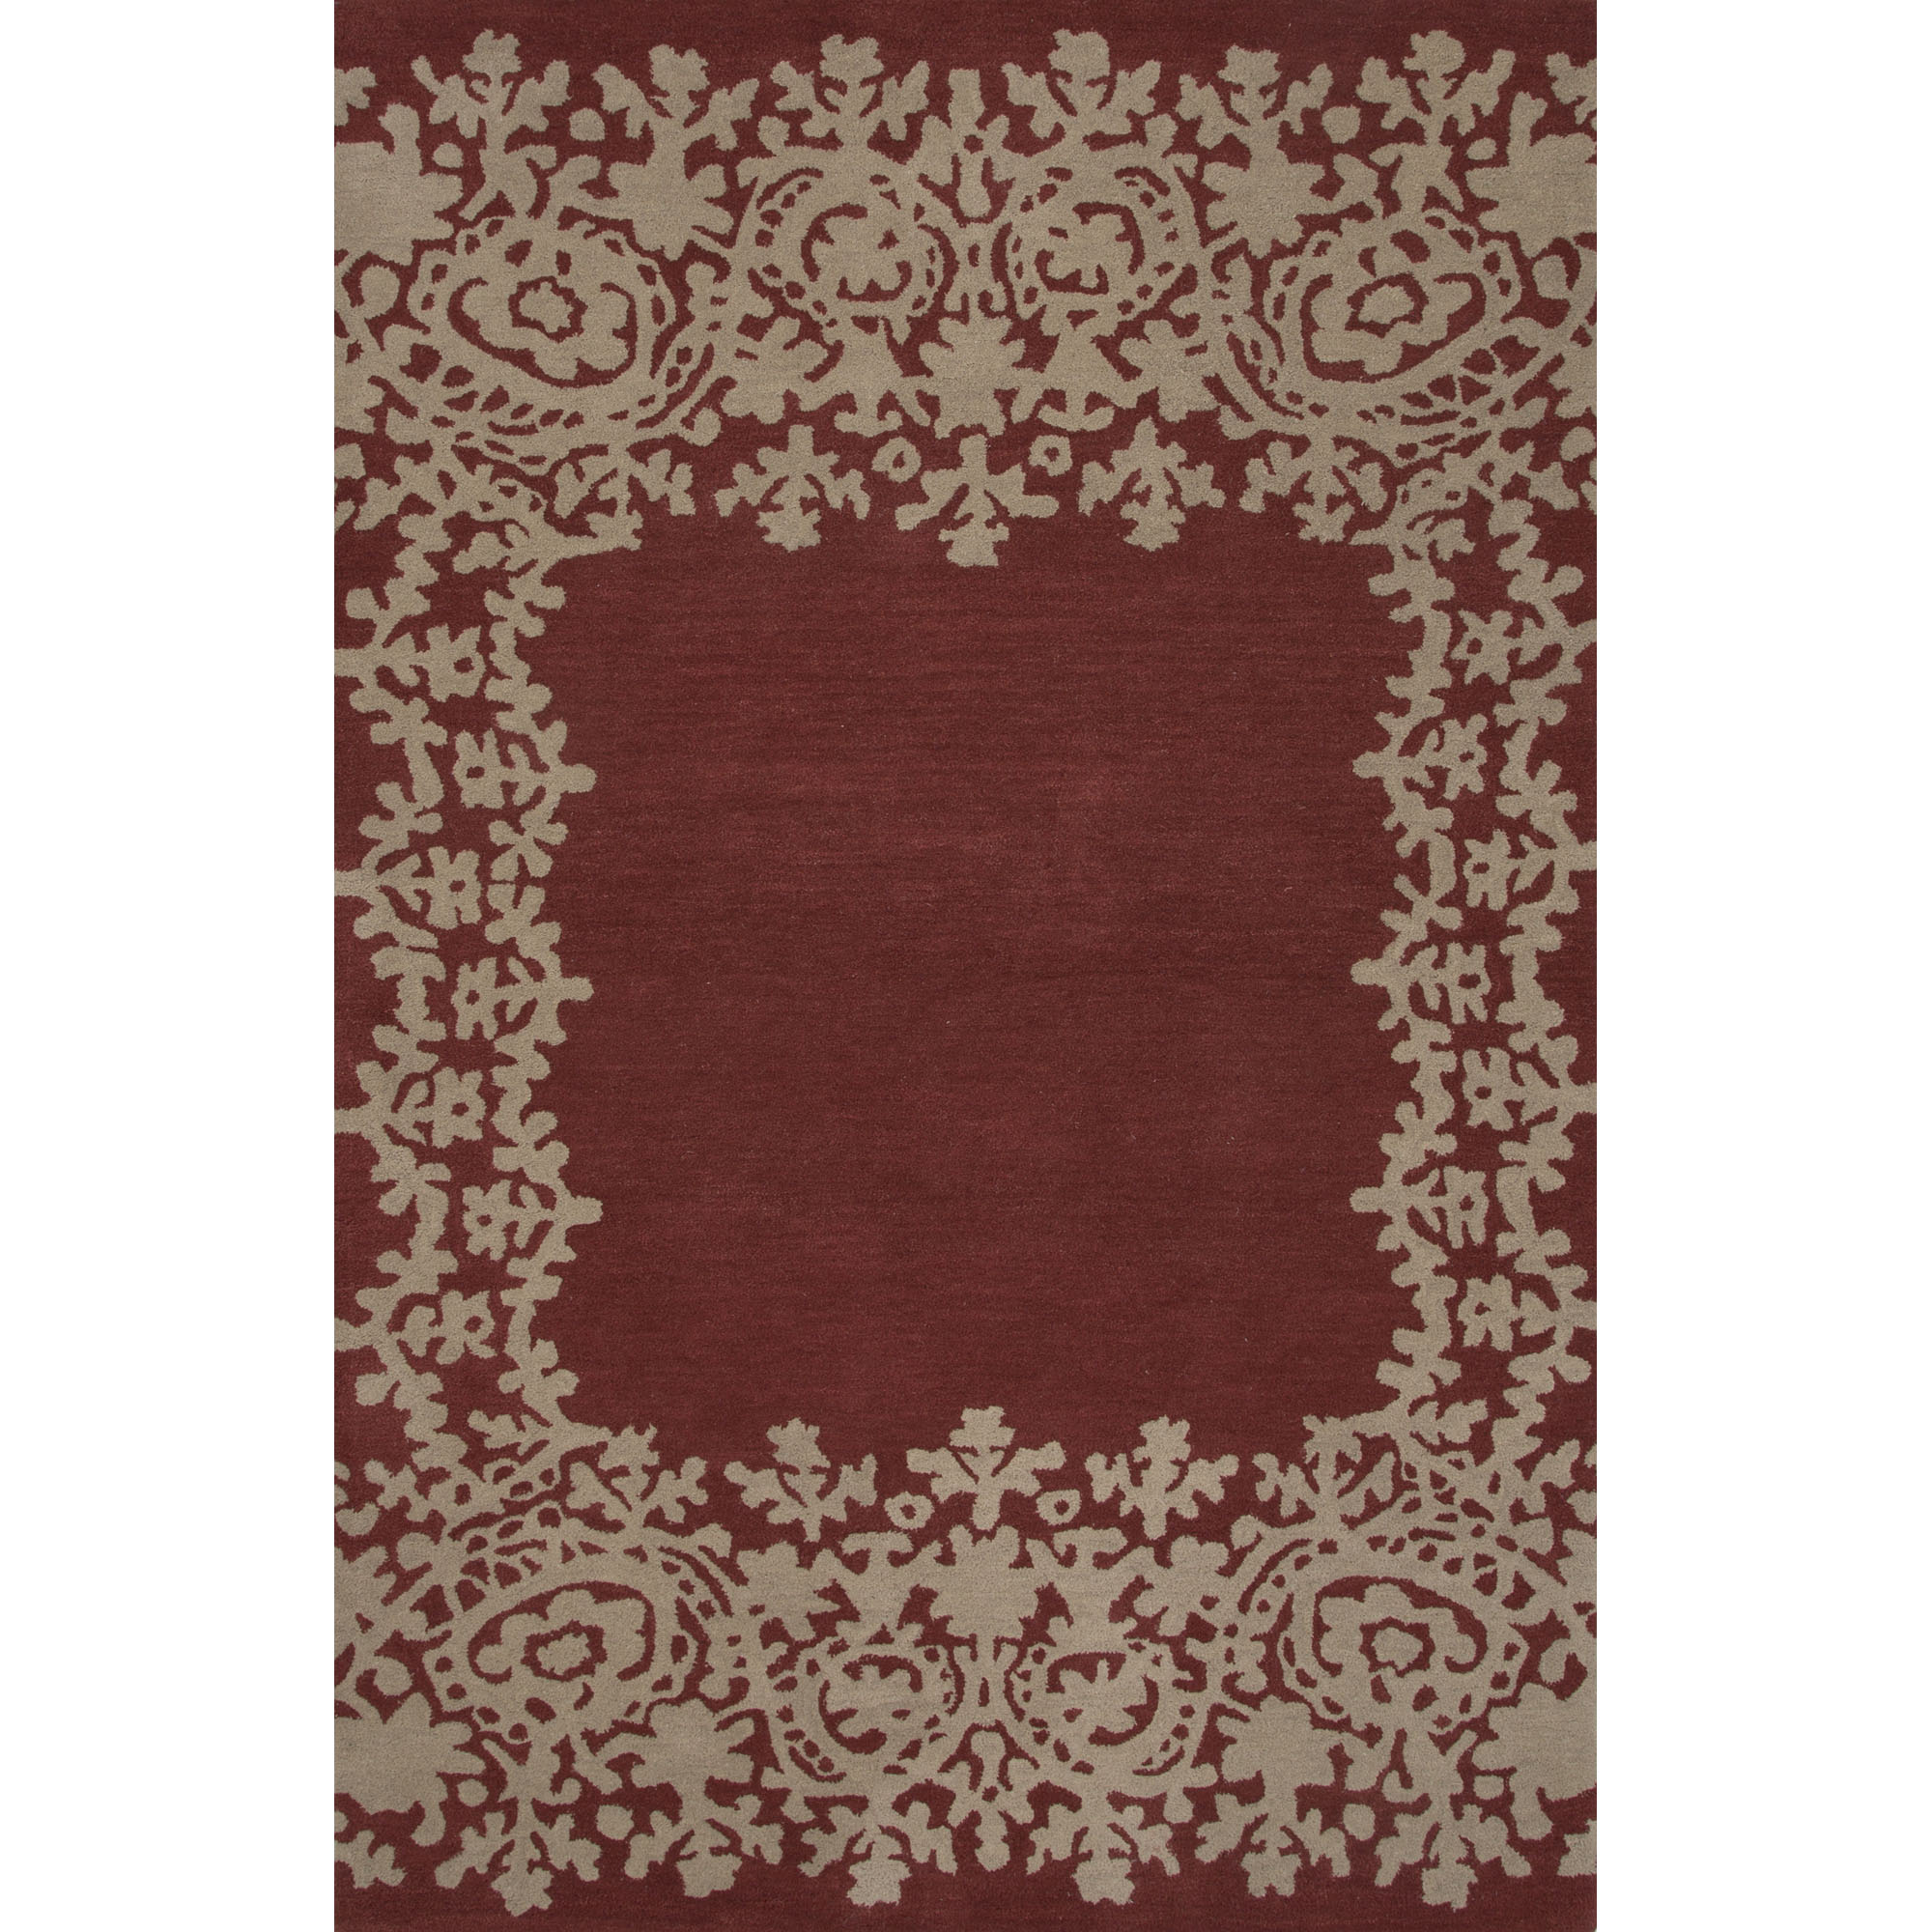 JAIPUR Rugs Traditions Made Modern Tufted 8 x 11 Rug - Item Number: RUG122203